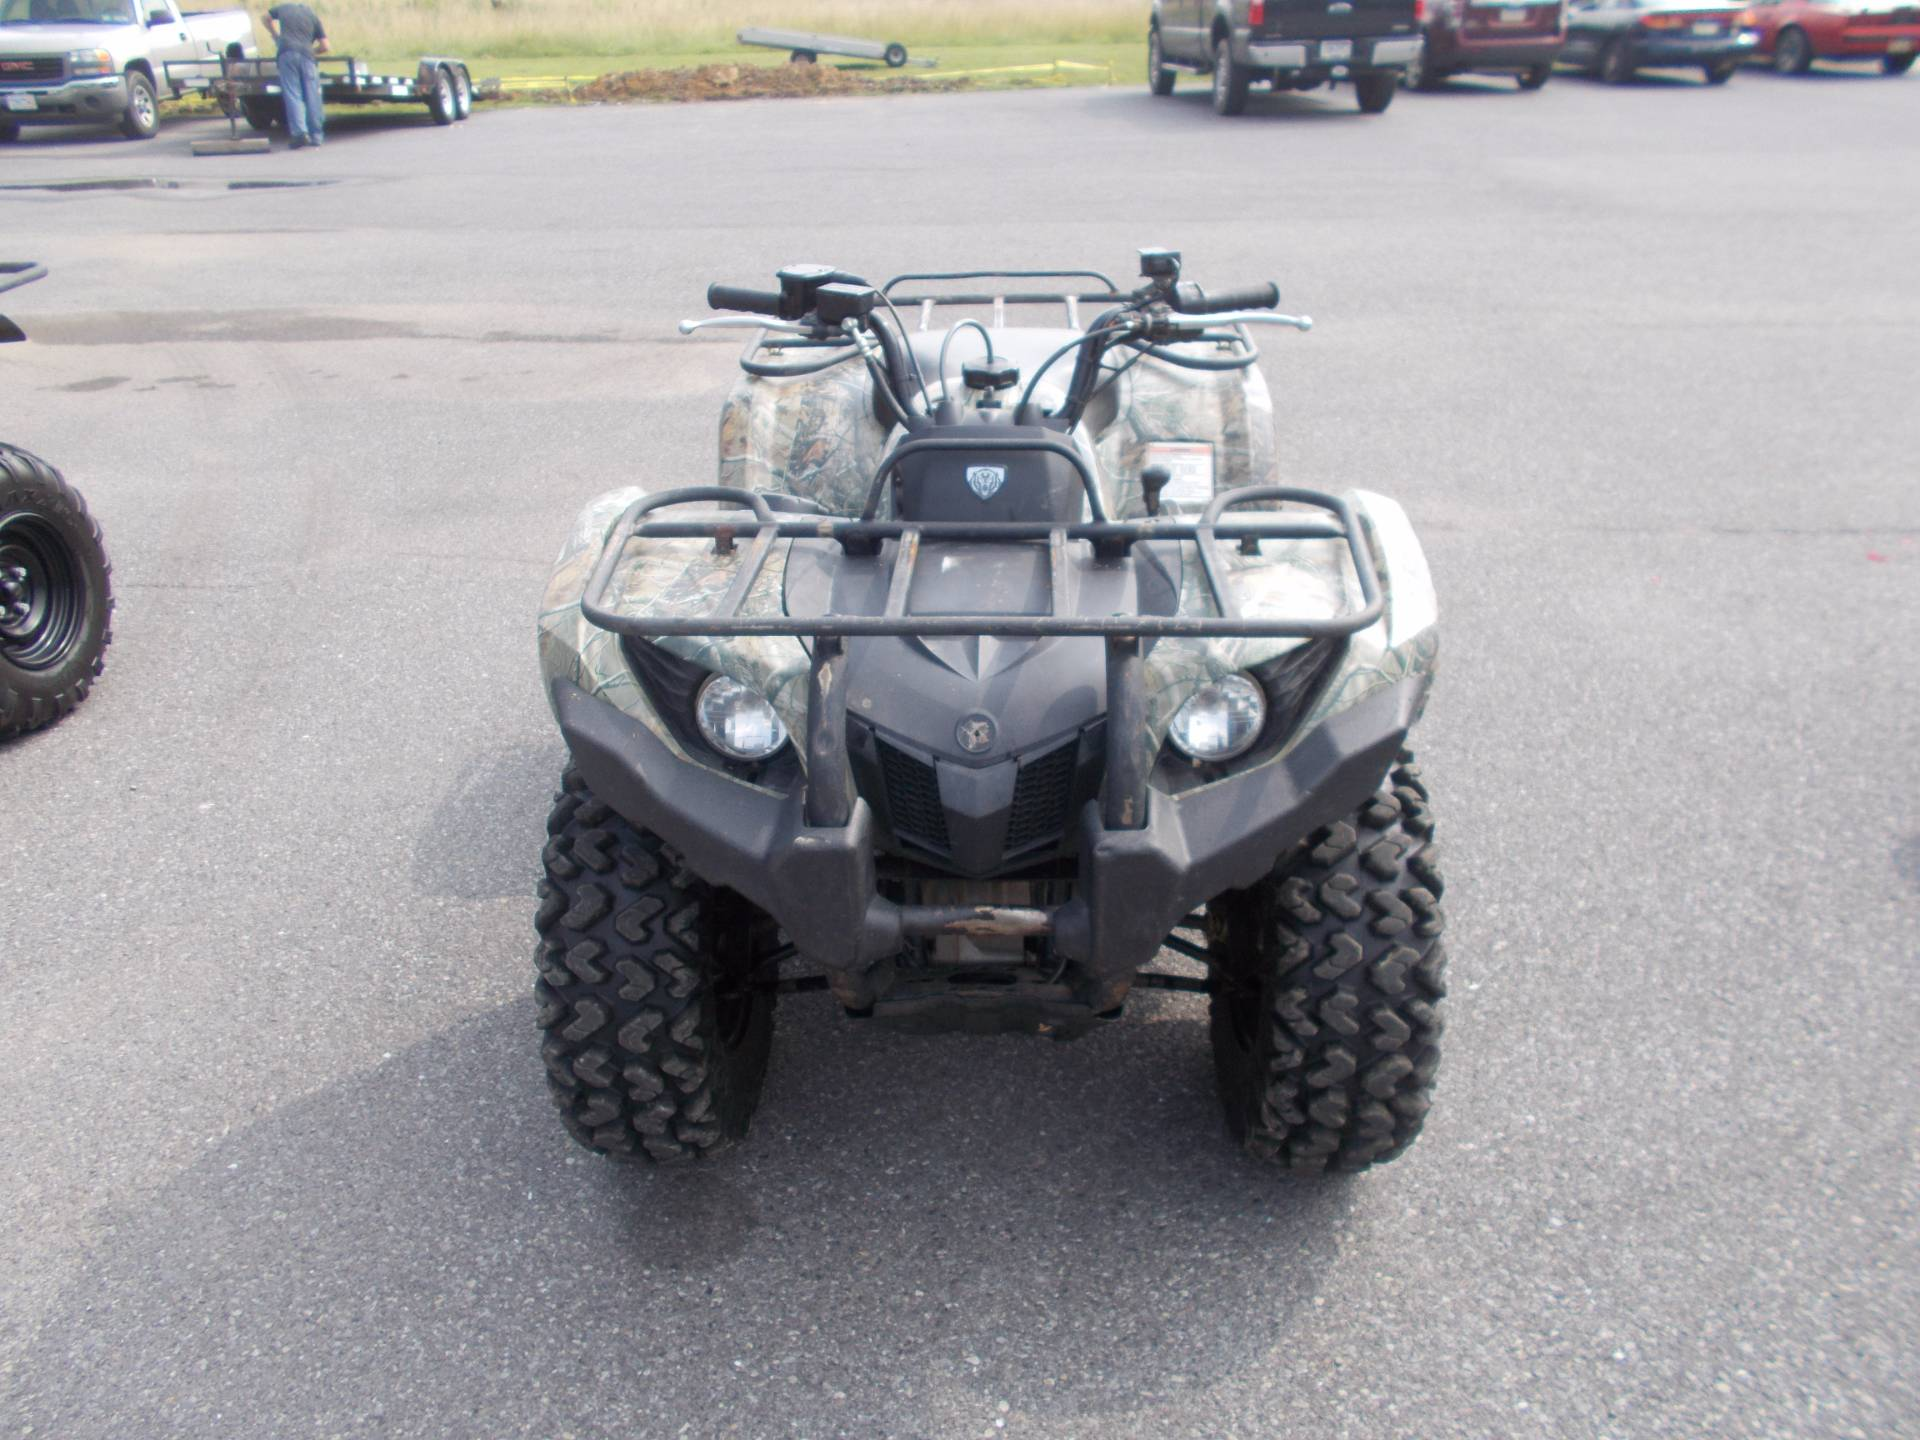 2009 yamaha grizzly 450 auto 4x4 irs for sale ebensburg for Yamaha grizzly 450 for sale